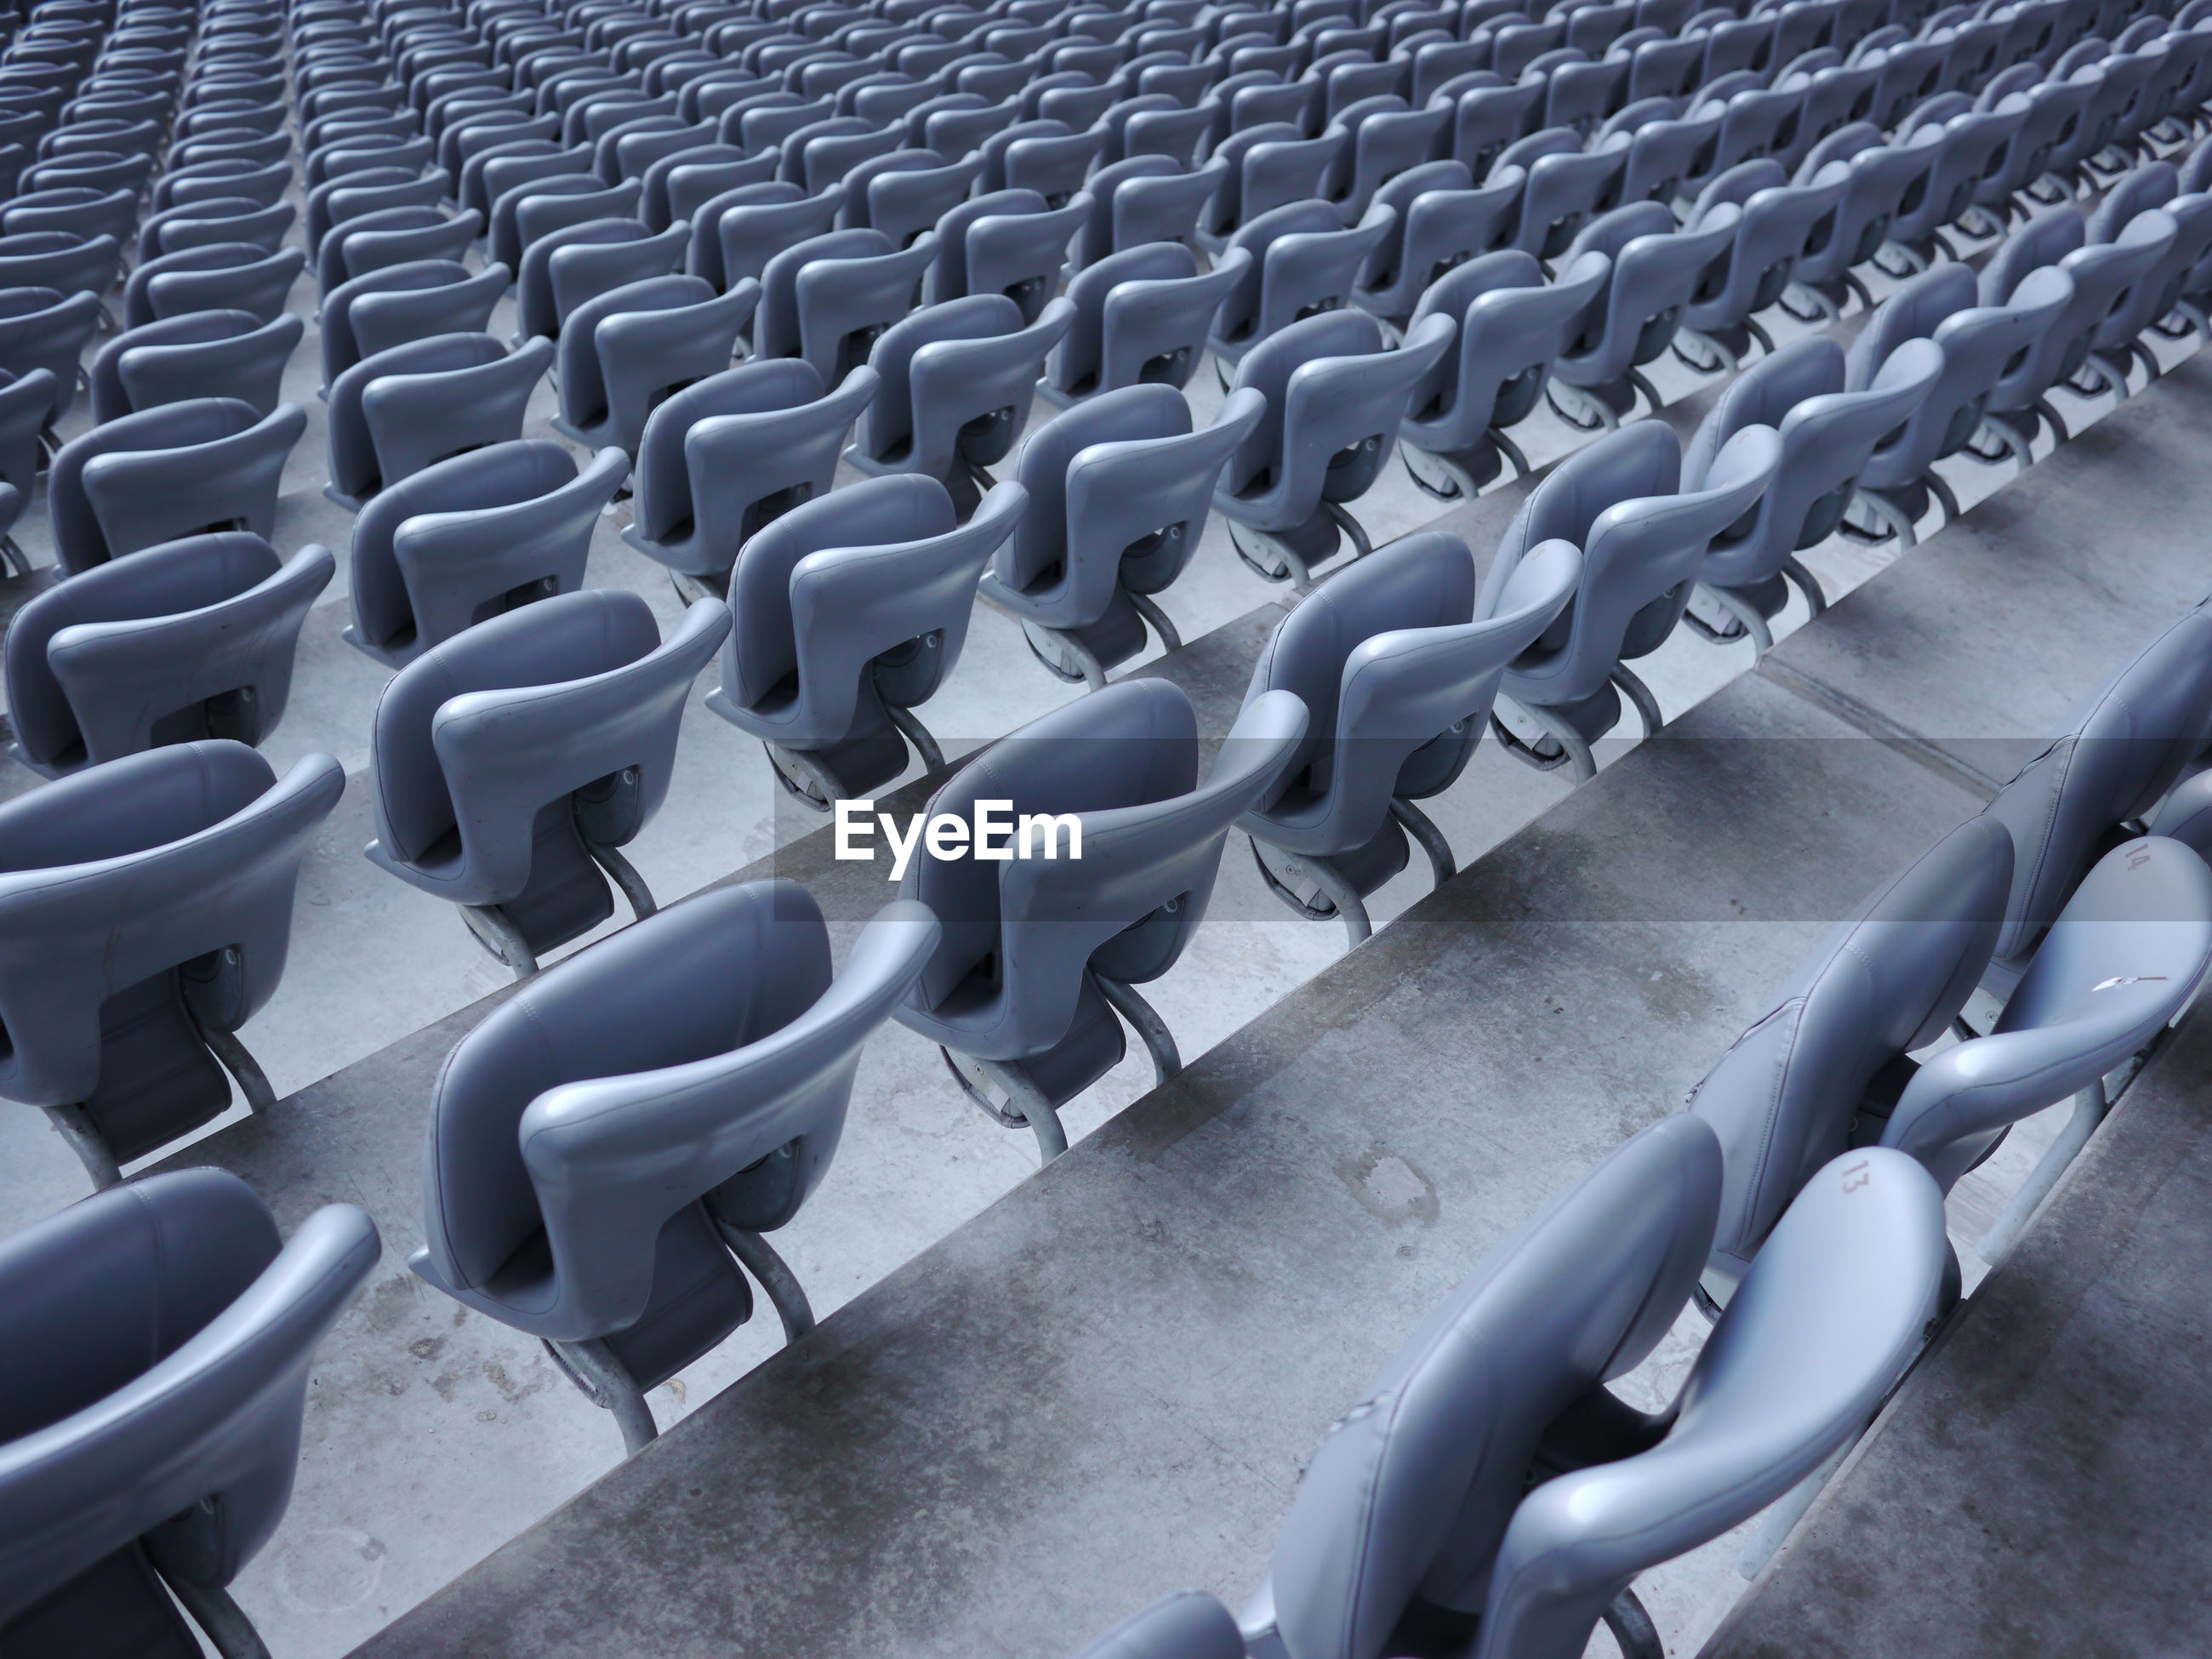 High angle view of empty chairs